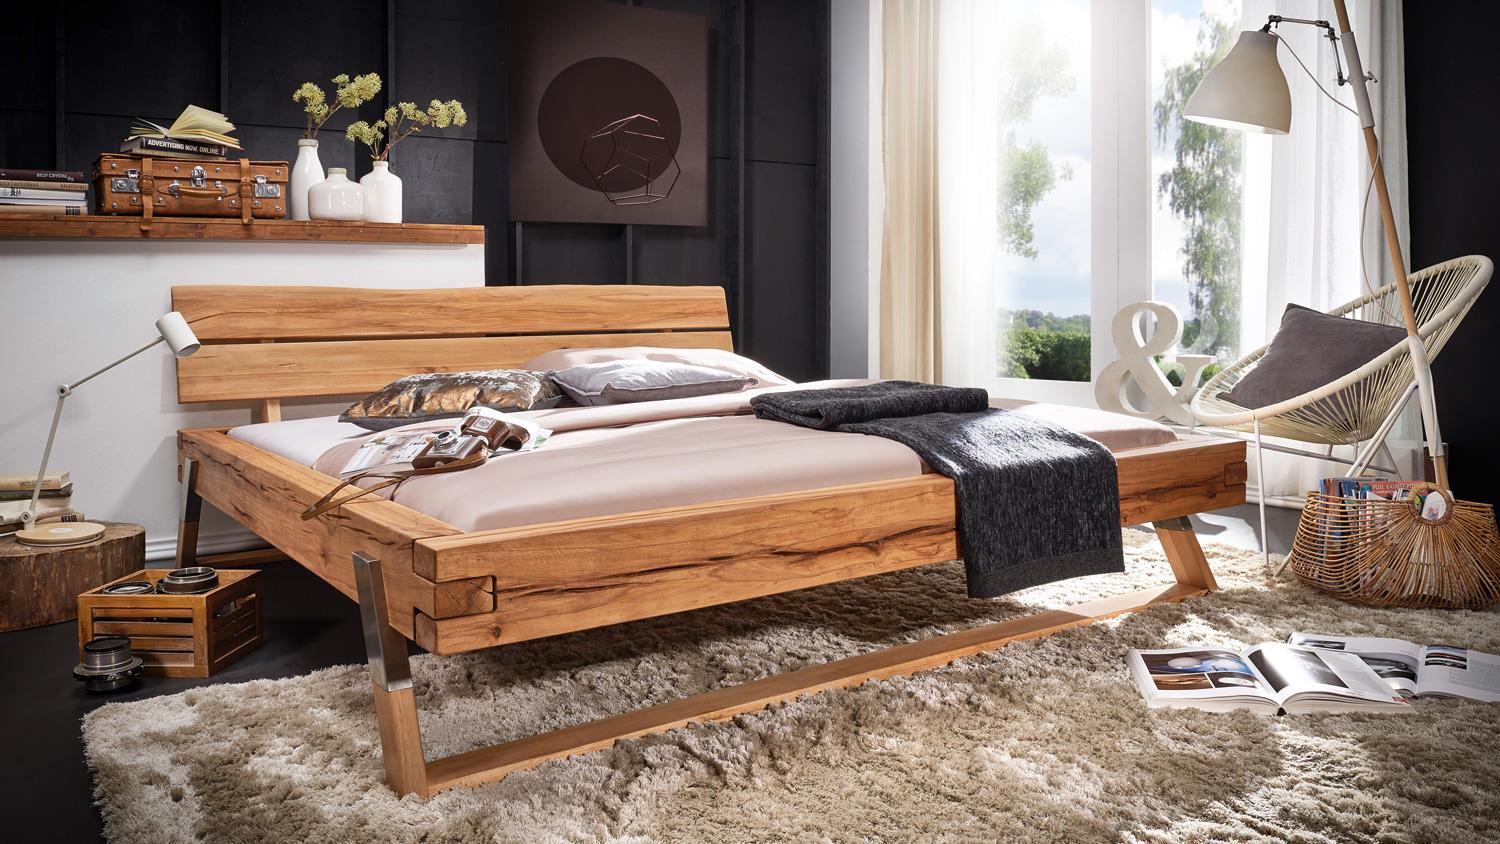 balkenbett gojo bett in wildbuche massiv ge lt f e edelstahl 180x200. Black Bedroom Furniture Sets. Home Design Ideas